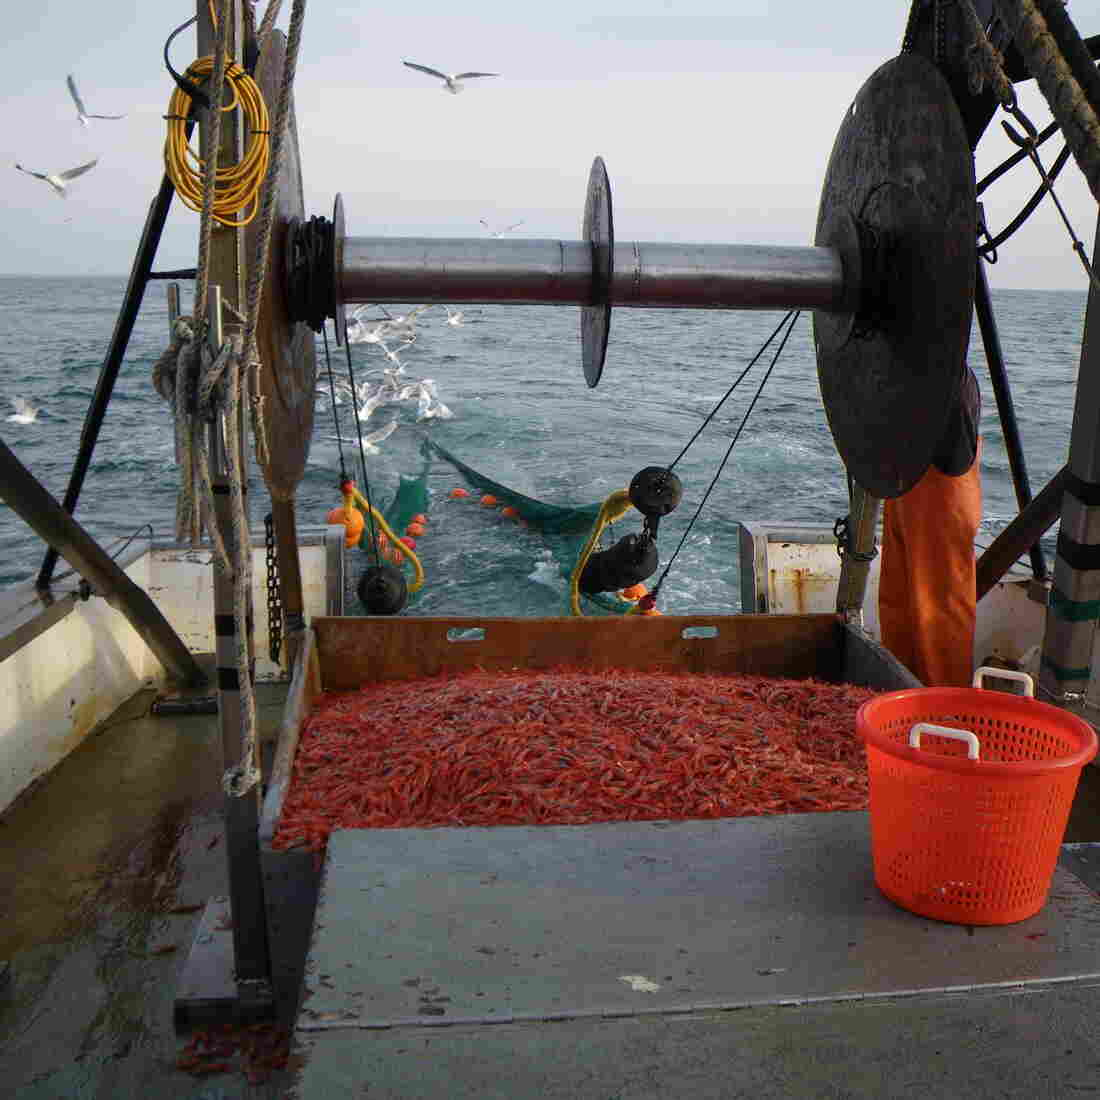 Trawlers in the Gulf of Maine are allowed to catch Maine shrimp during a limited season that started this week.